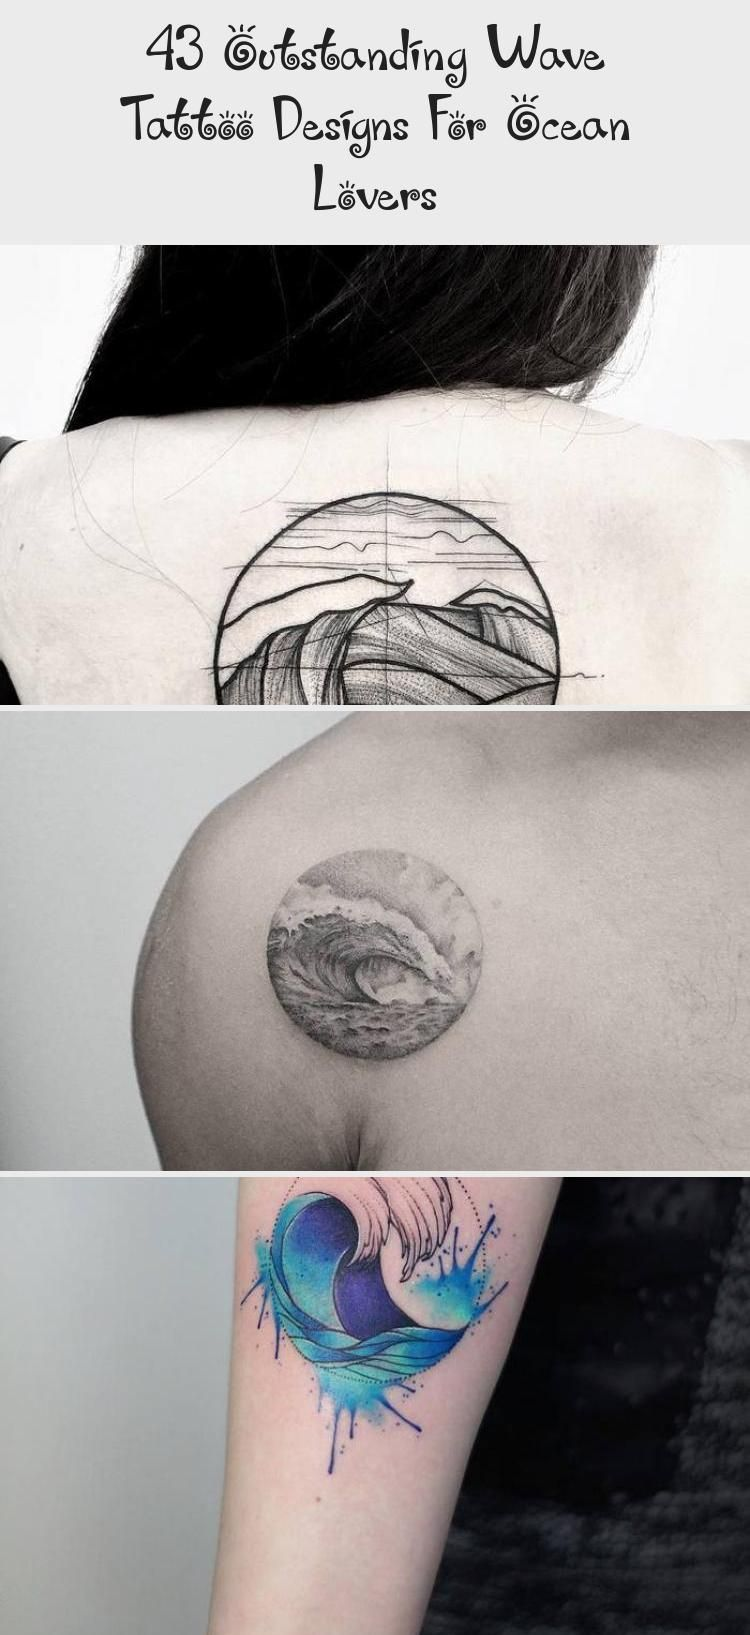 Photo of 43 Outstanding Wave Tattoo Designs For Ocean Lovers – ART